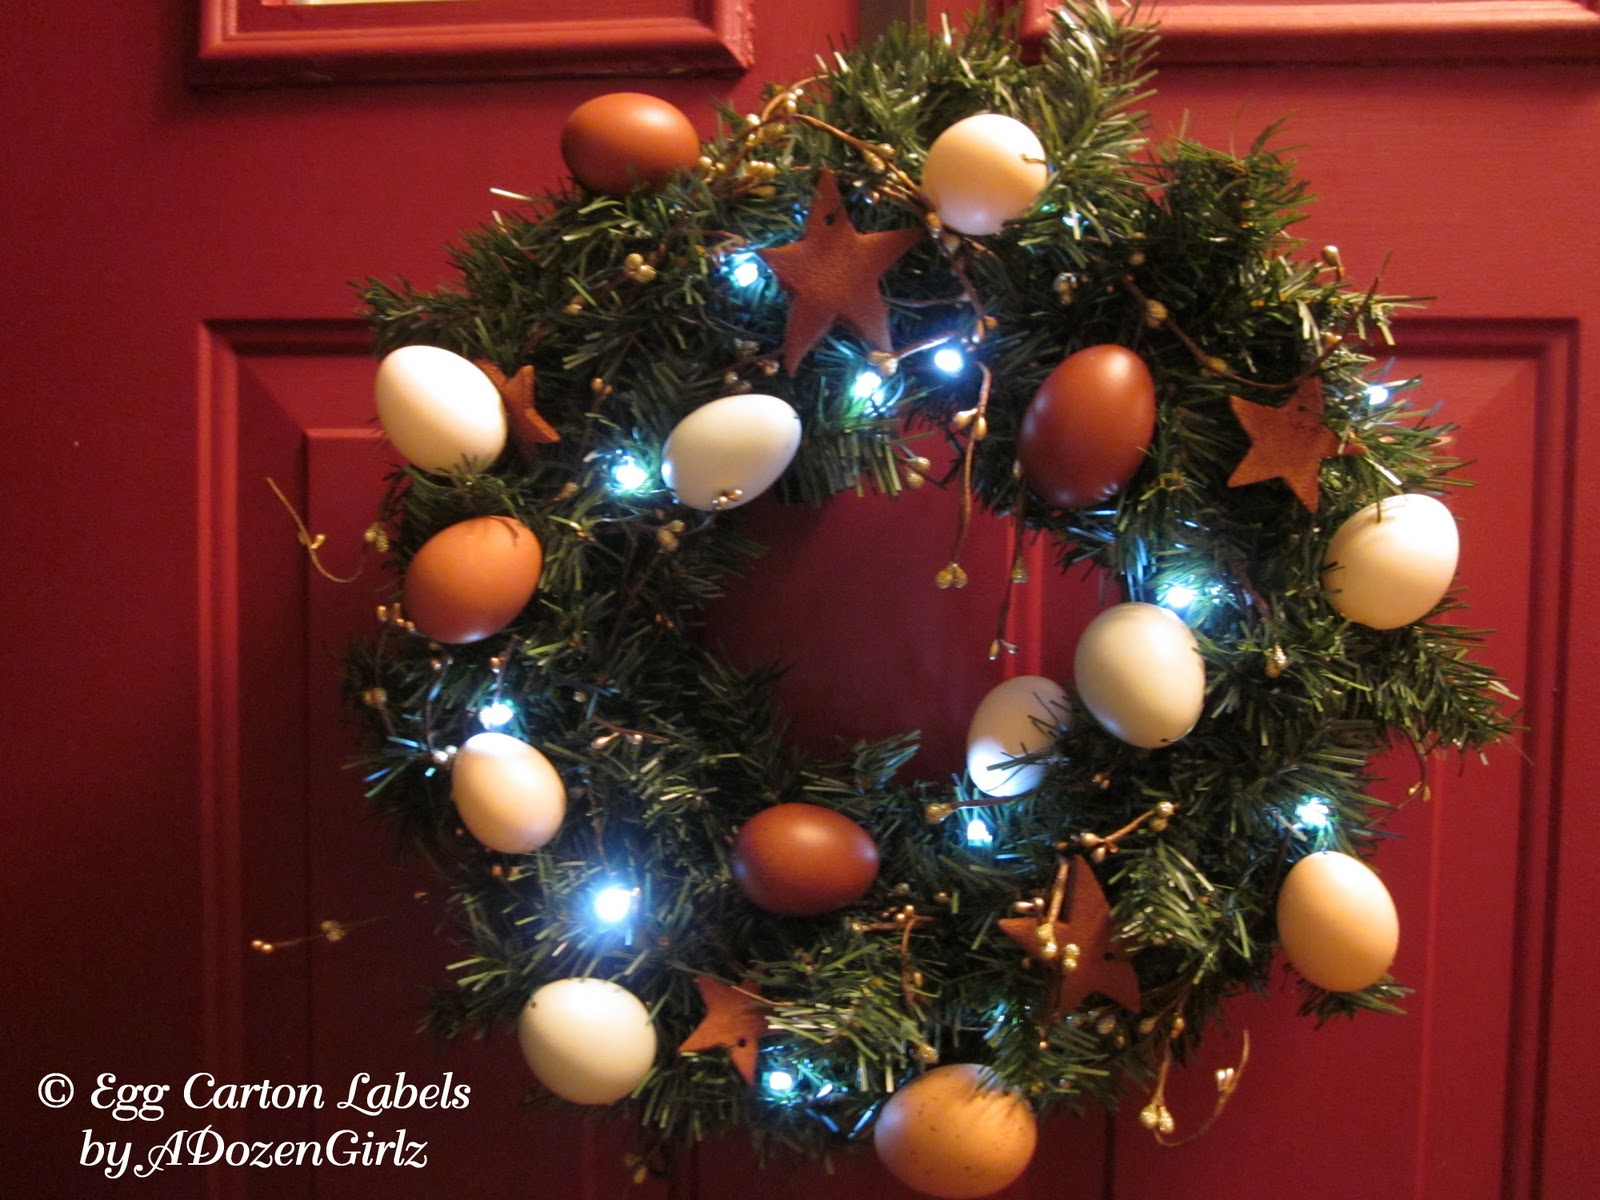 Lawyer christmas ornaments - To Learn How To Make Blown Eggs And Decorate Them Here The Eggs Were Attached To The Wreath By Stringing Floral Wire Through Both Ends Of The Blown Egg And